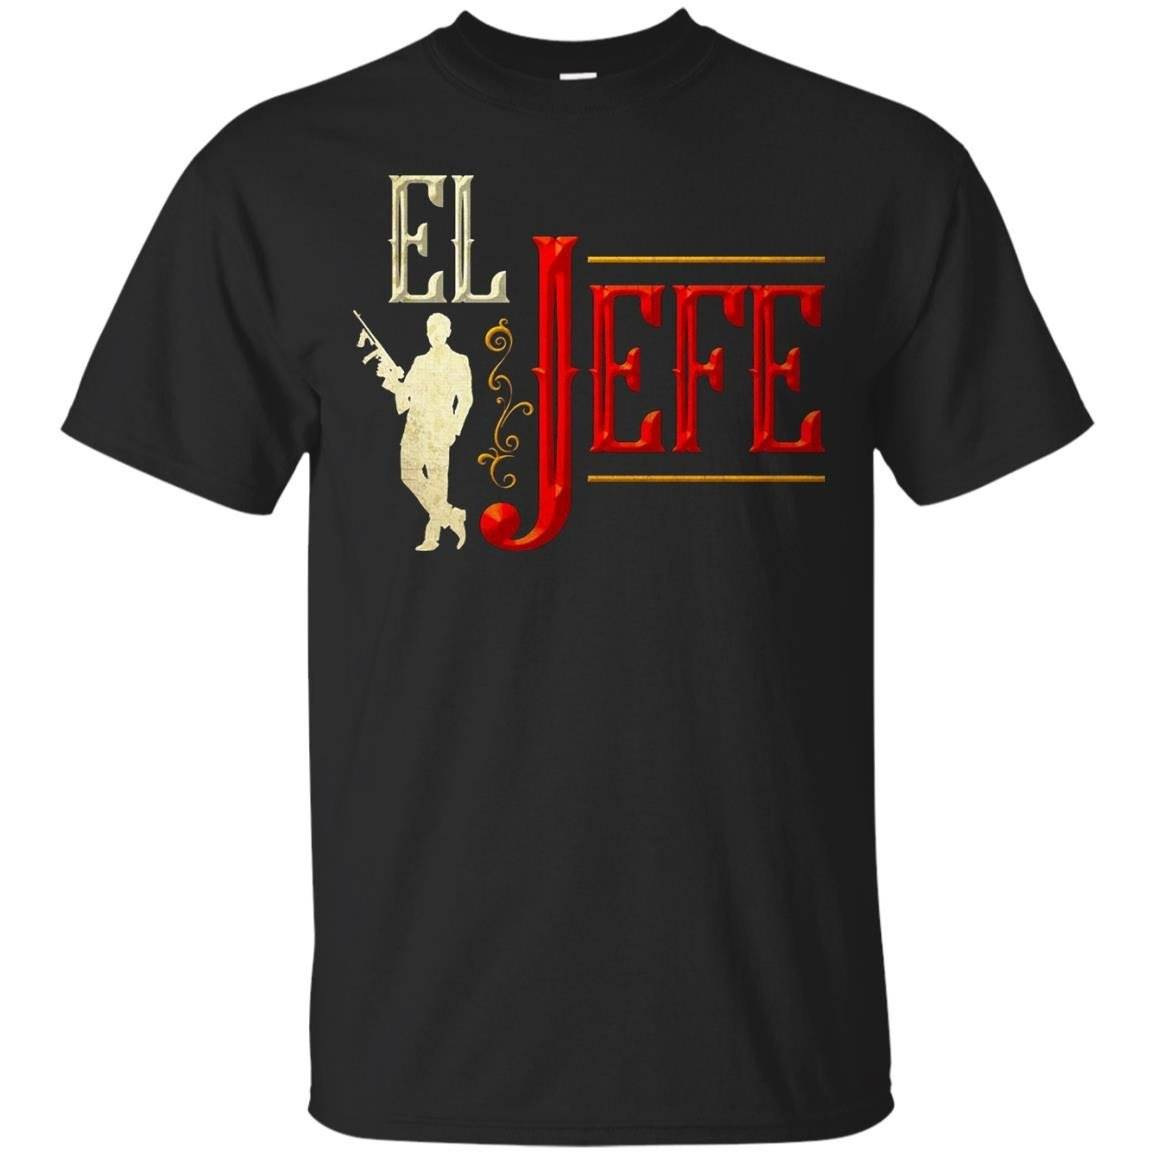 "Funny Mexican T-shirt ""EL JEFE"" – The Boss in Spanish – T-Shirt"